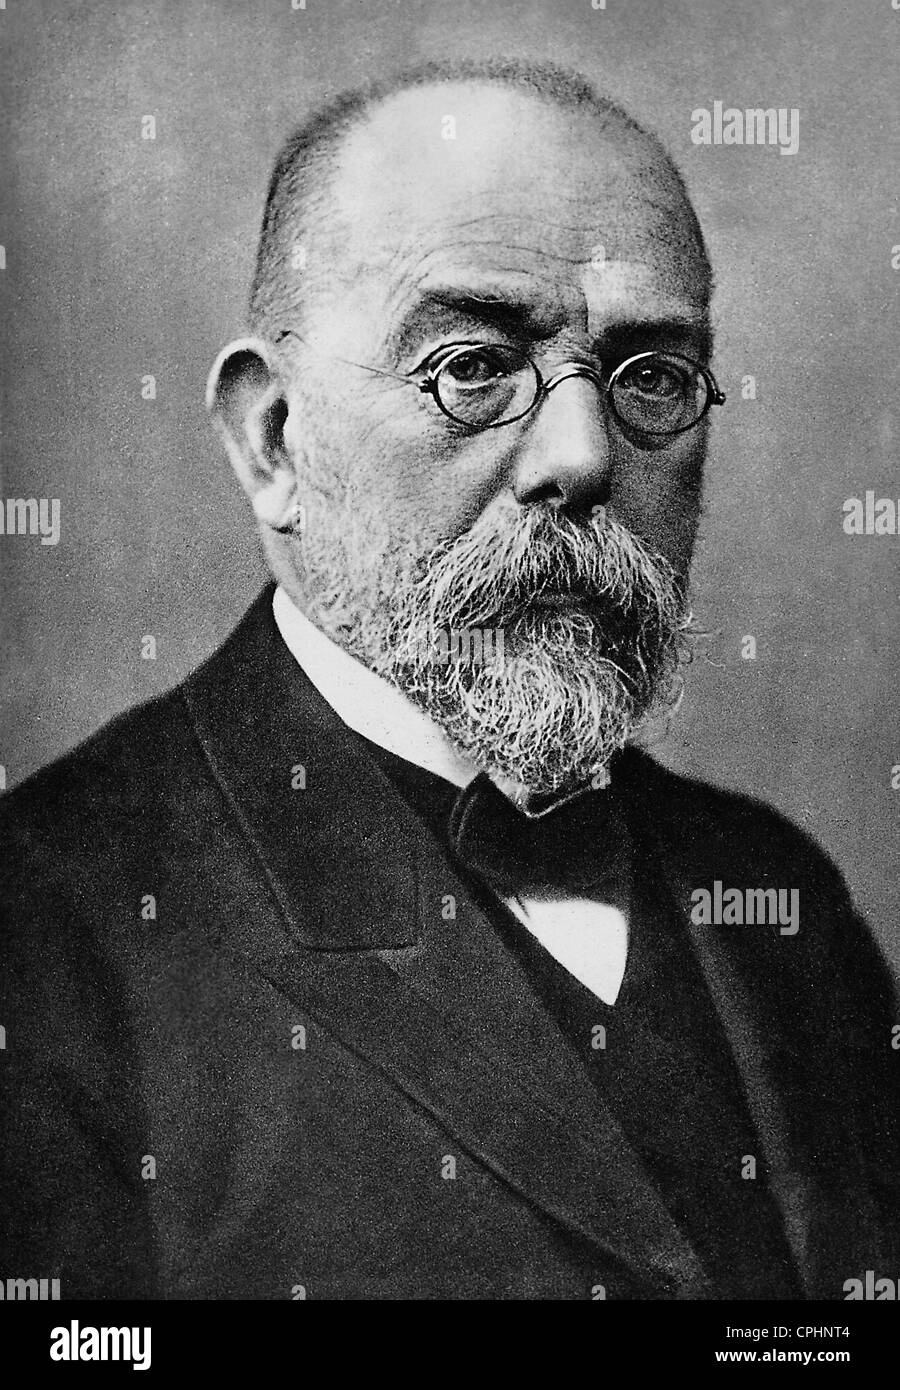 Dr Robert Koch, German bacteriologist - Stock Image